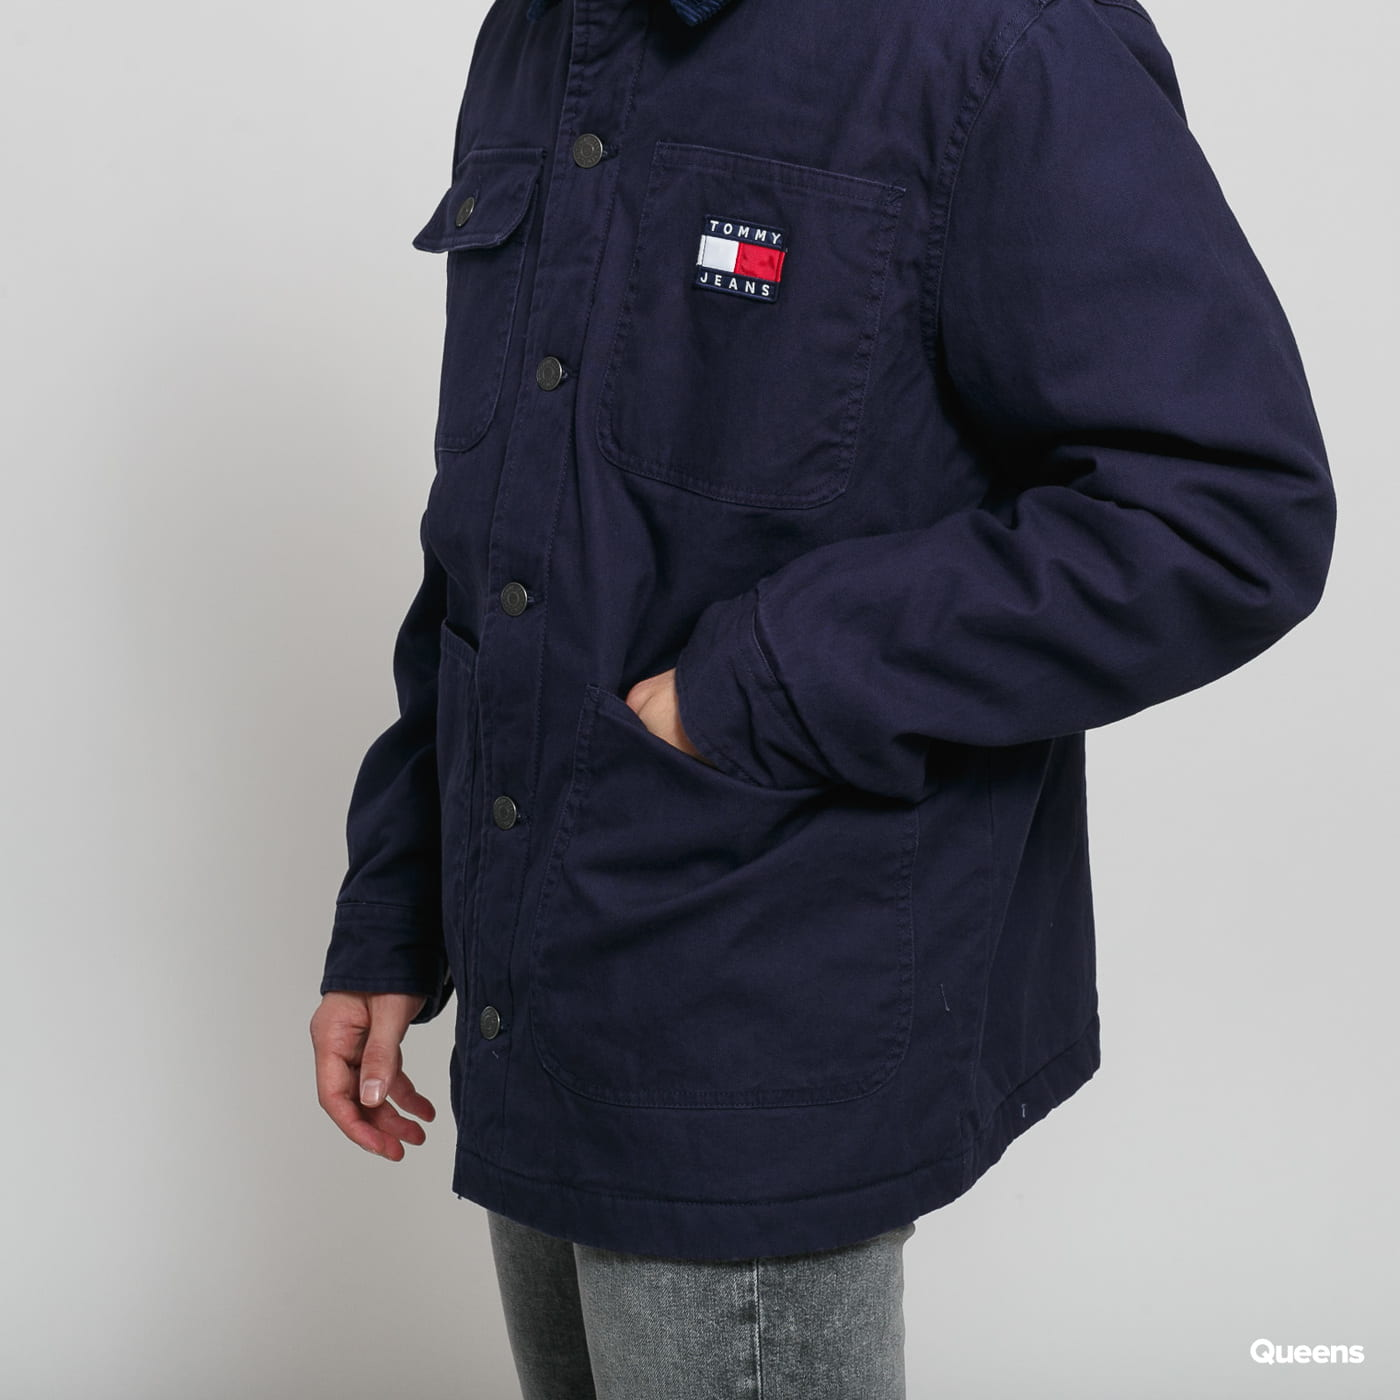 TOMMY JEANS M Workwear Jacket black iris